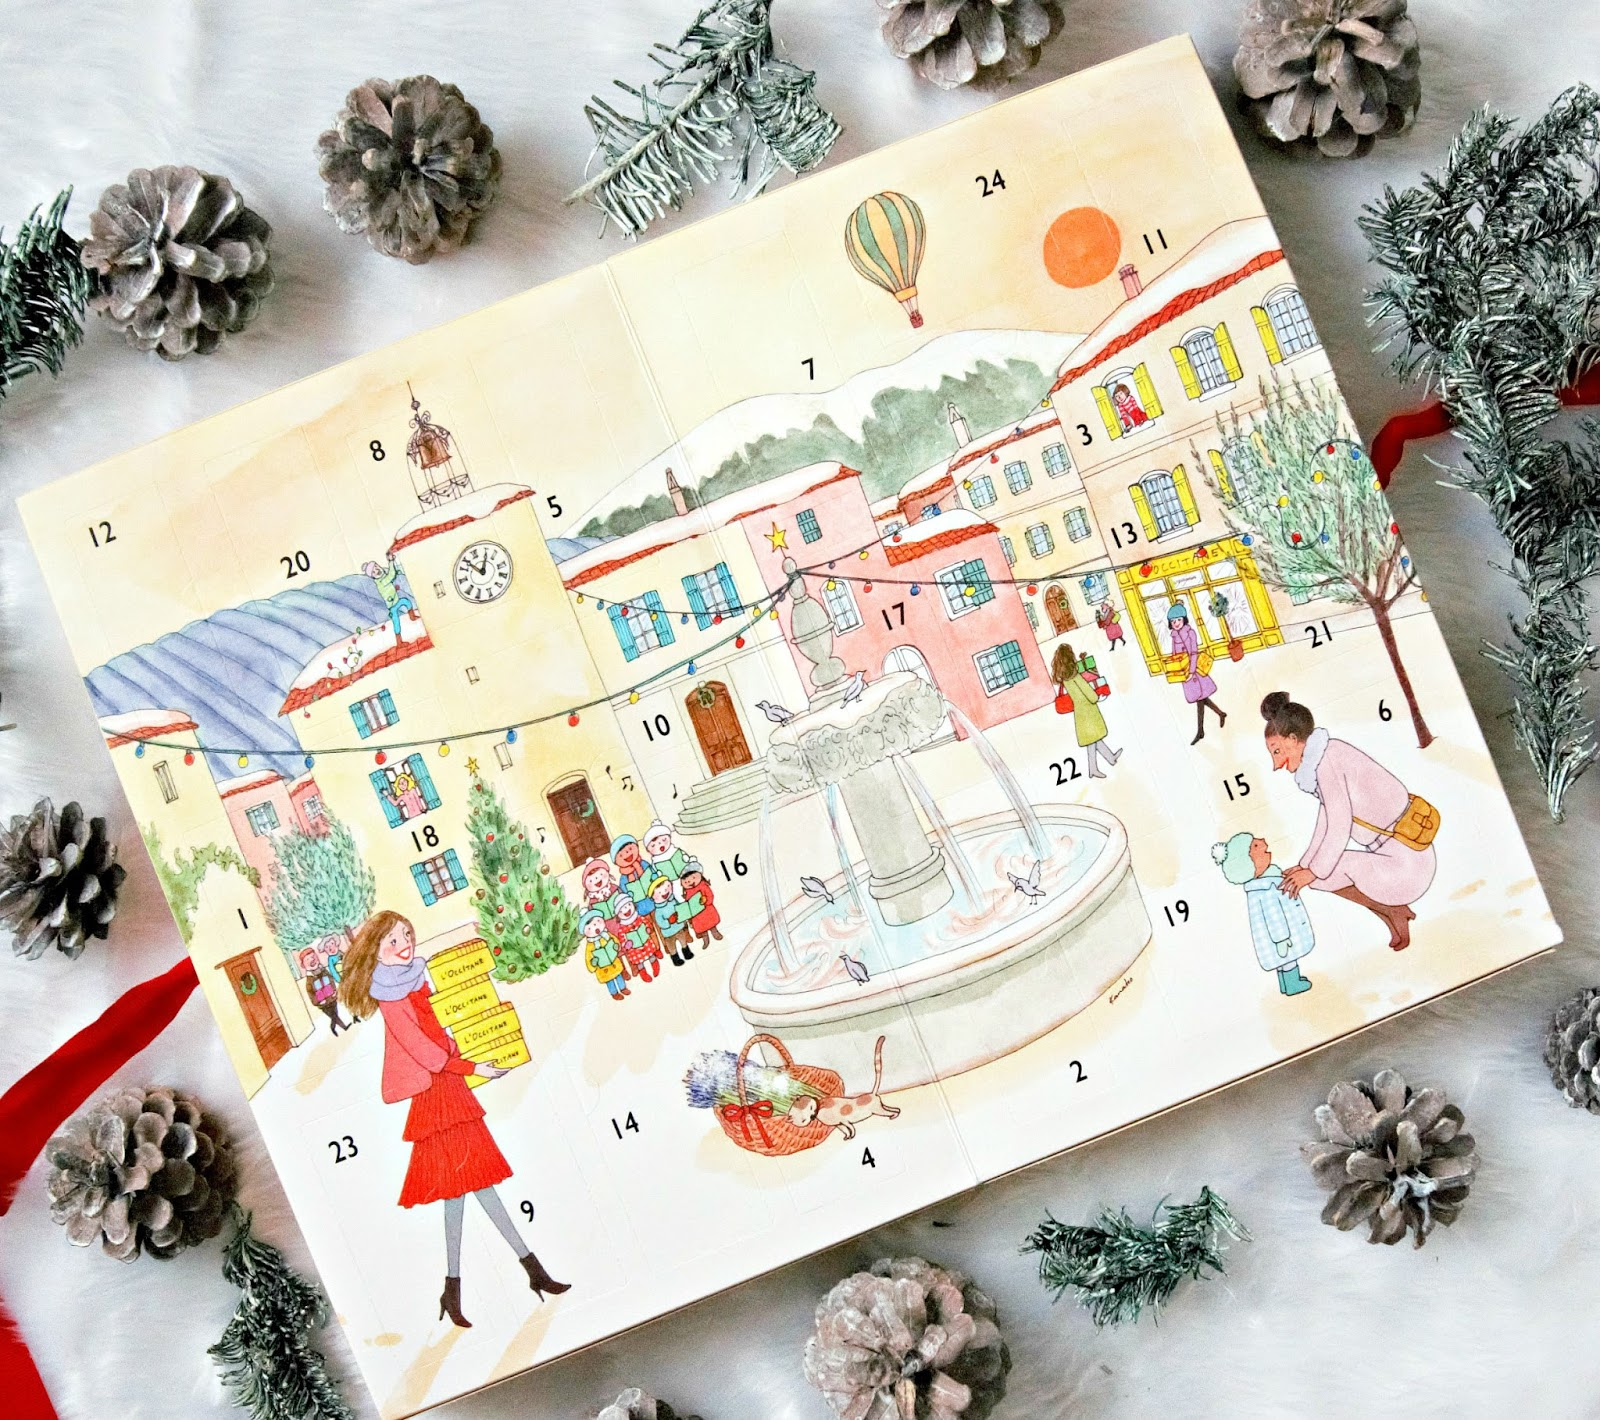 L'Occitane Classic Advent Calendar 2017 Review